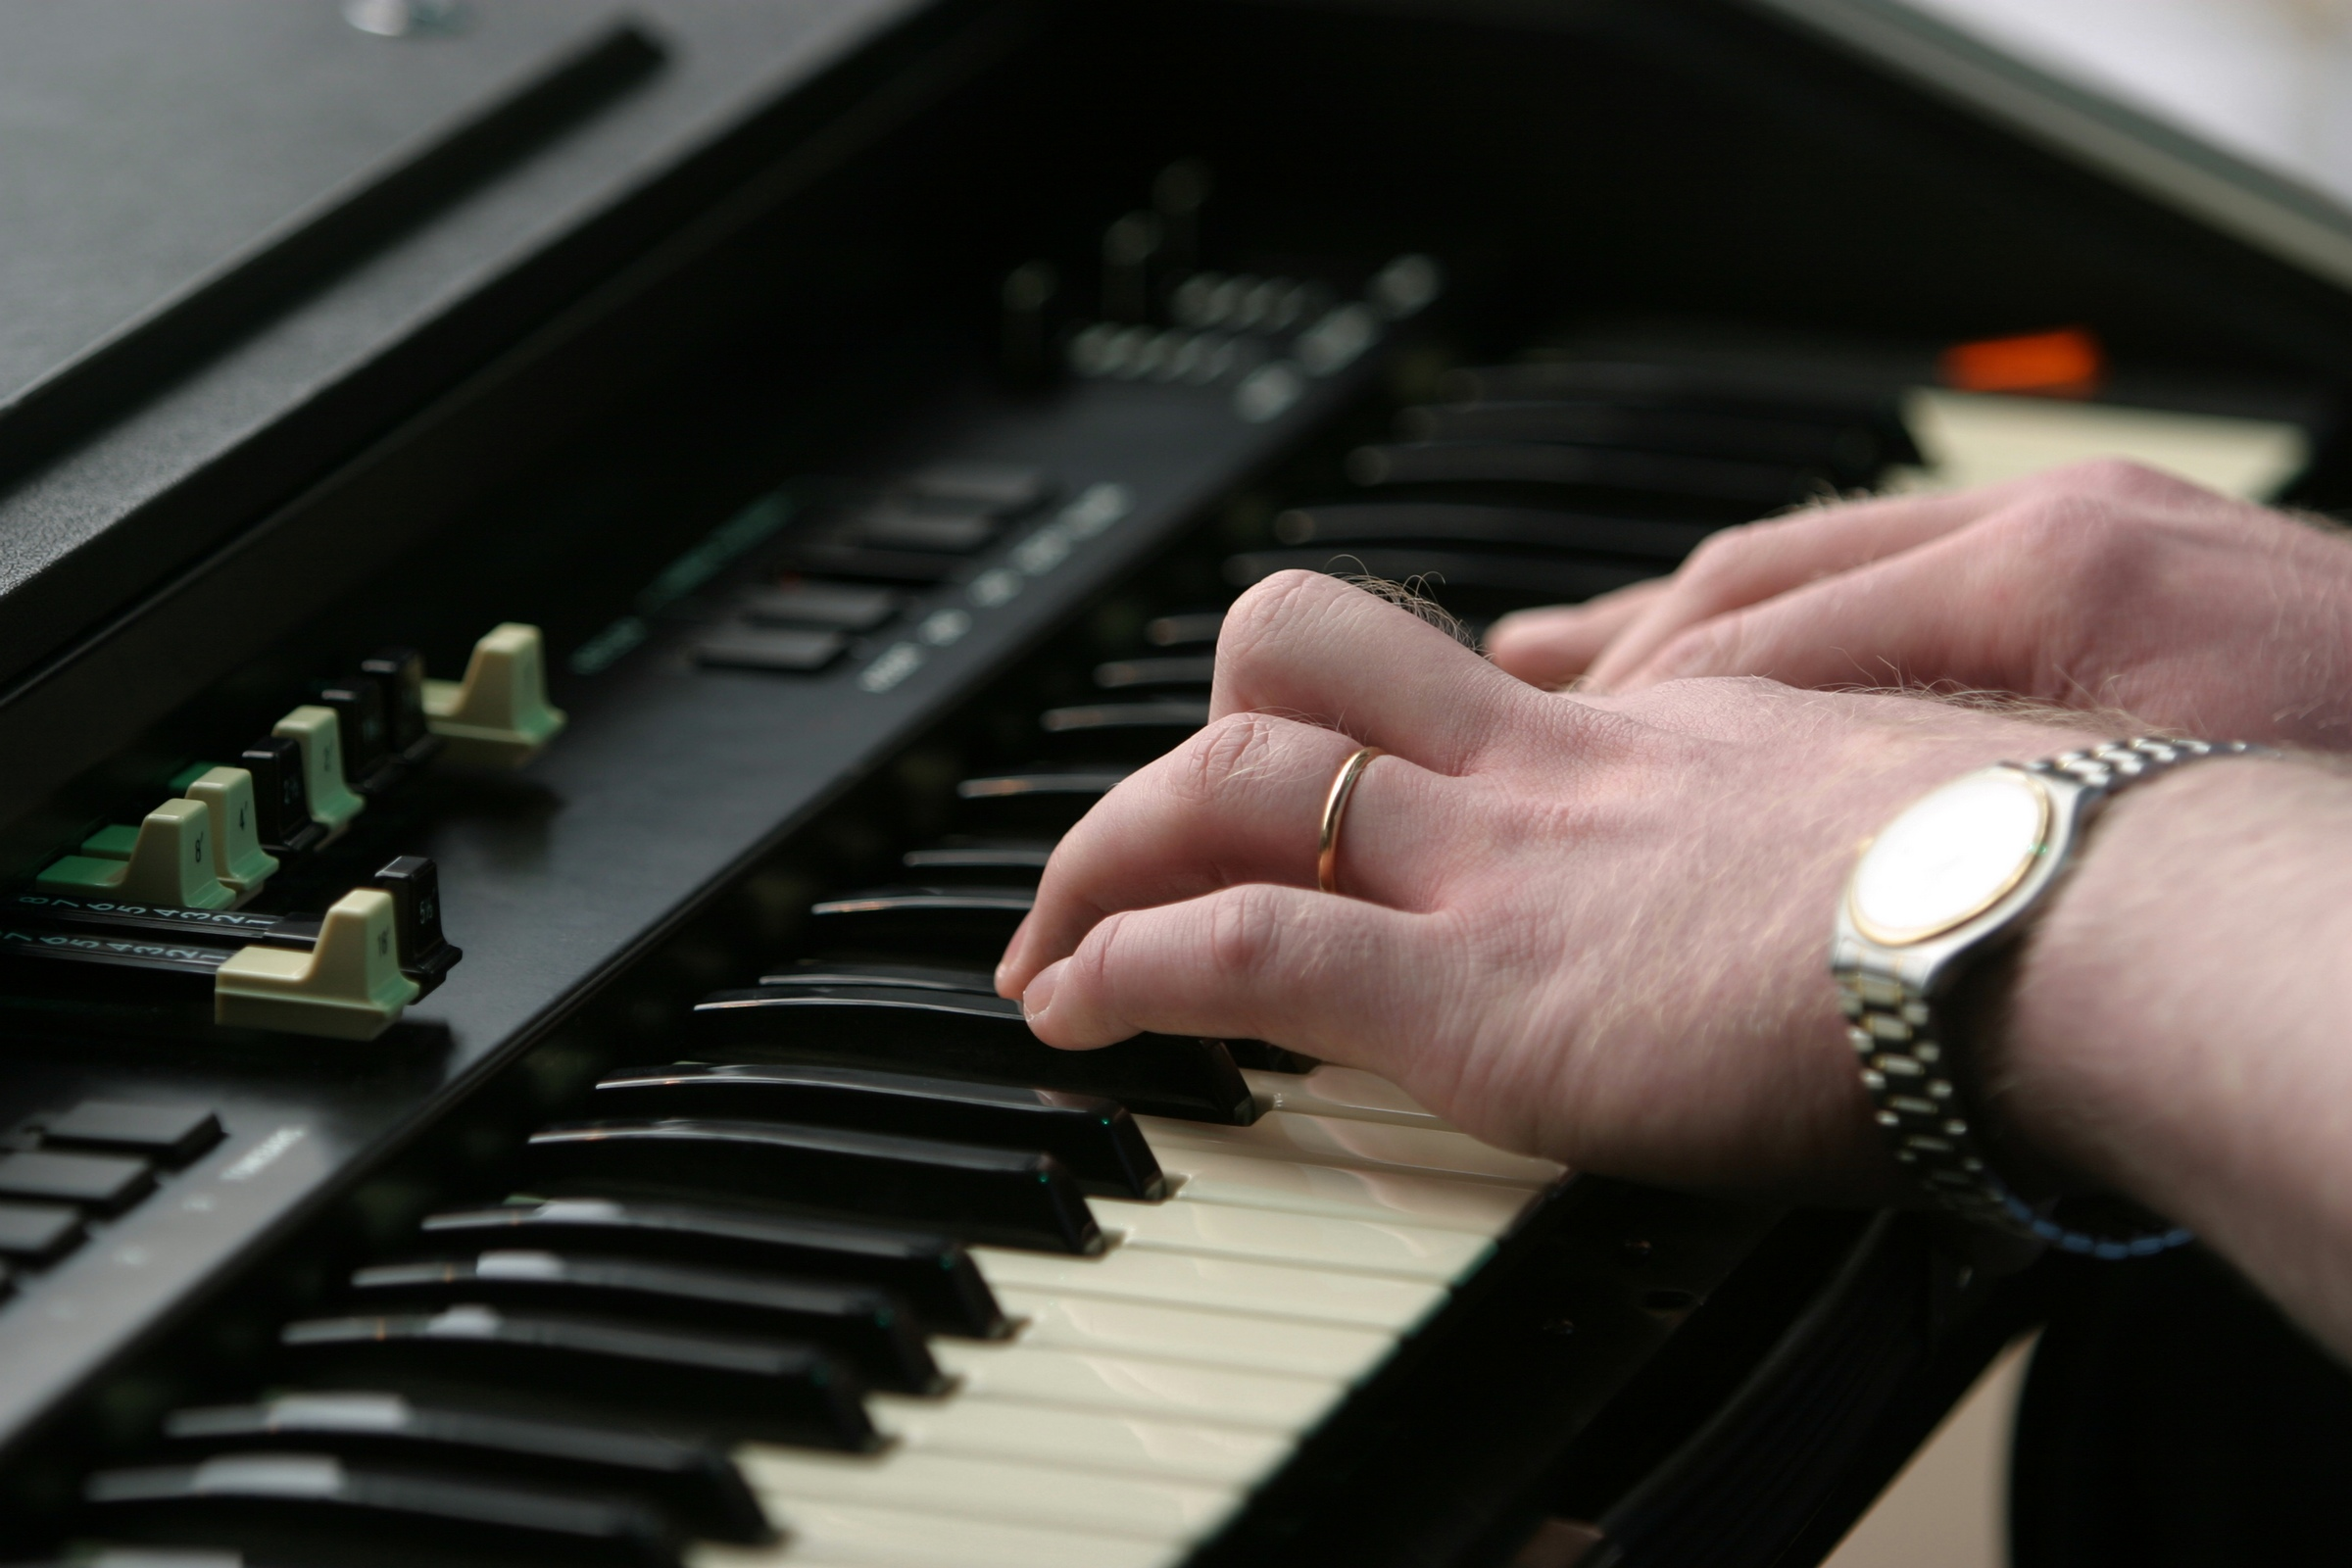 earn to play electronic keyboards and piano in Lakewood music school. earn to play electronic keyboards and piano in Denver music school.